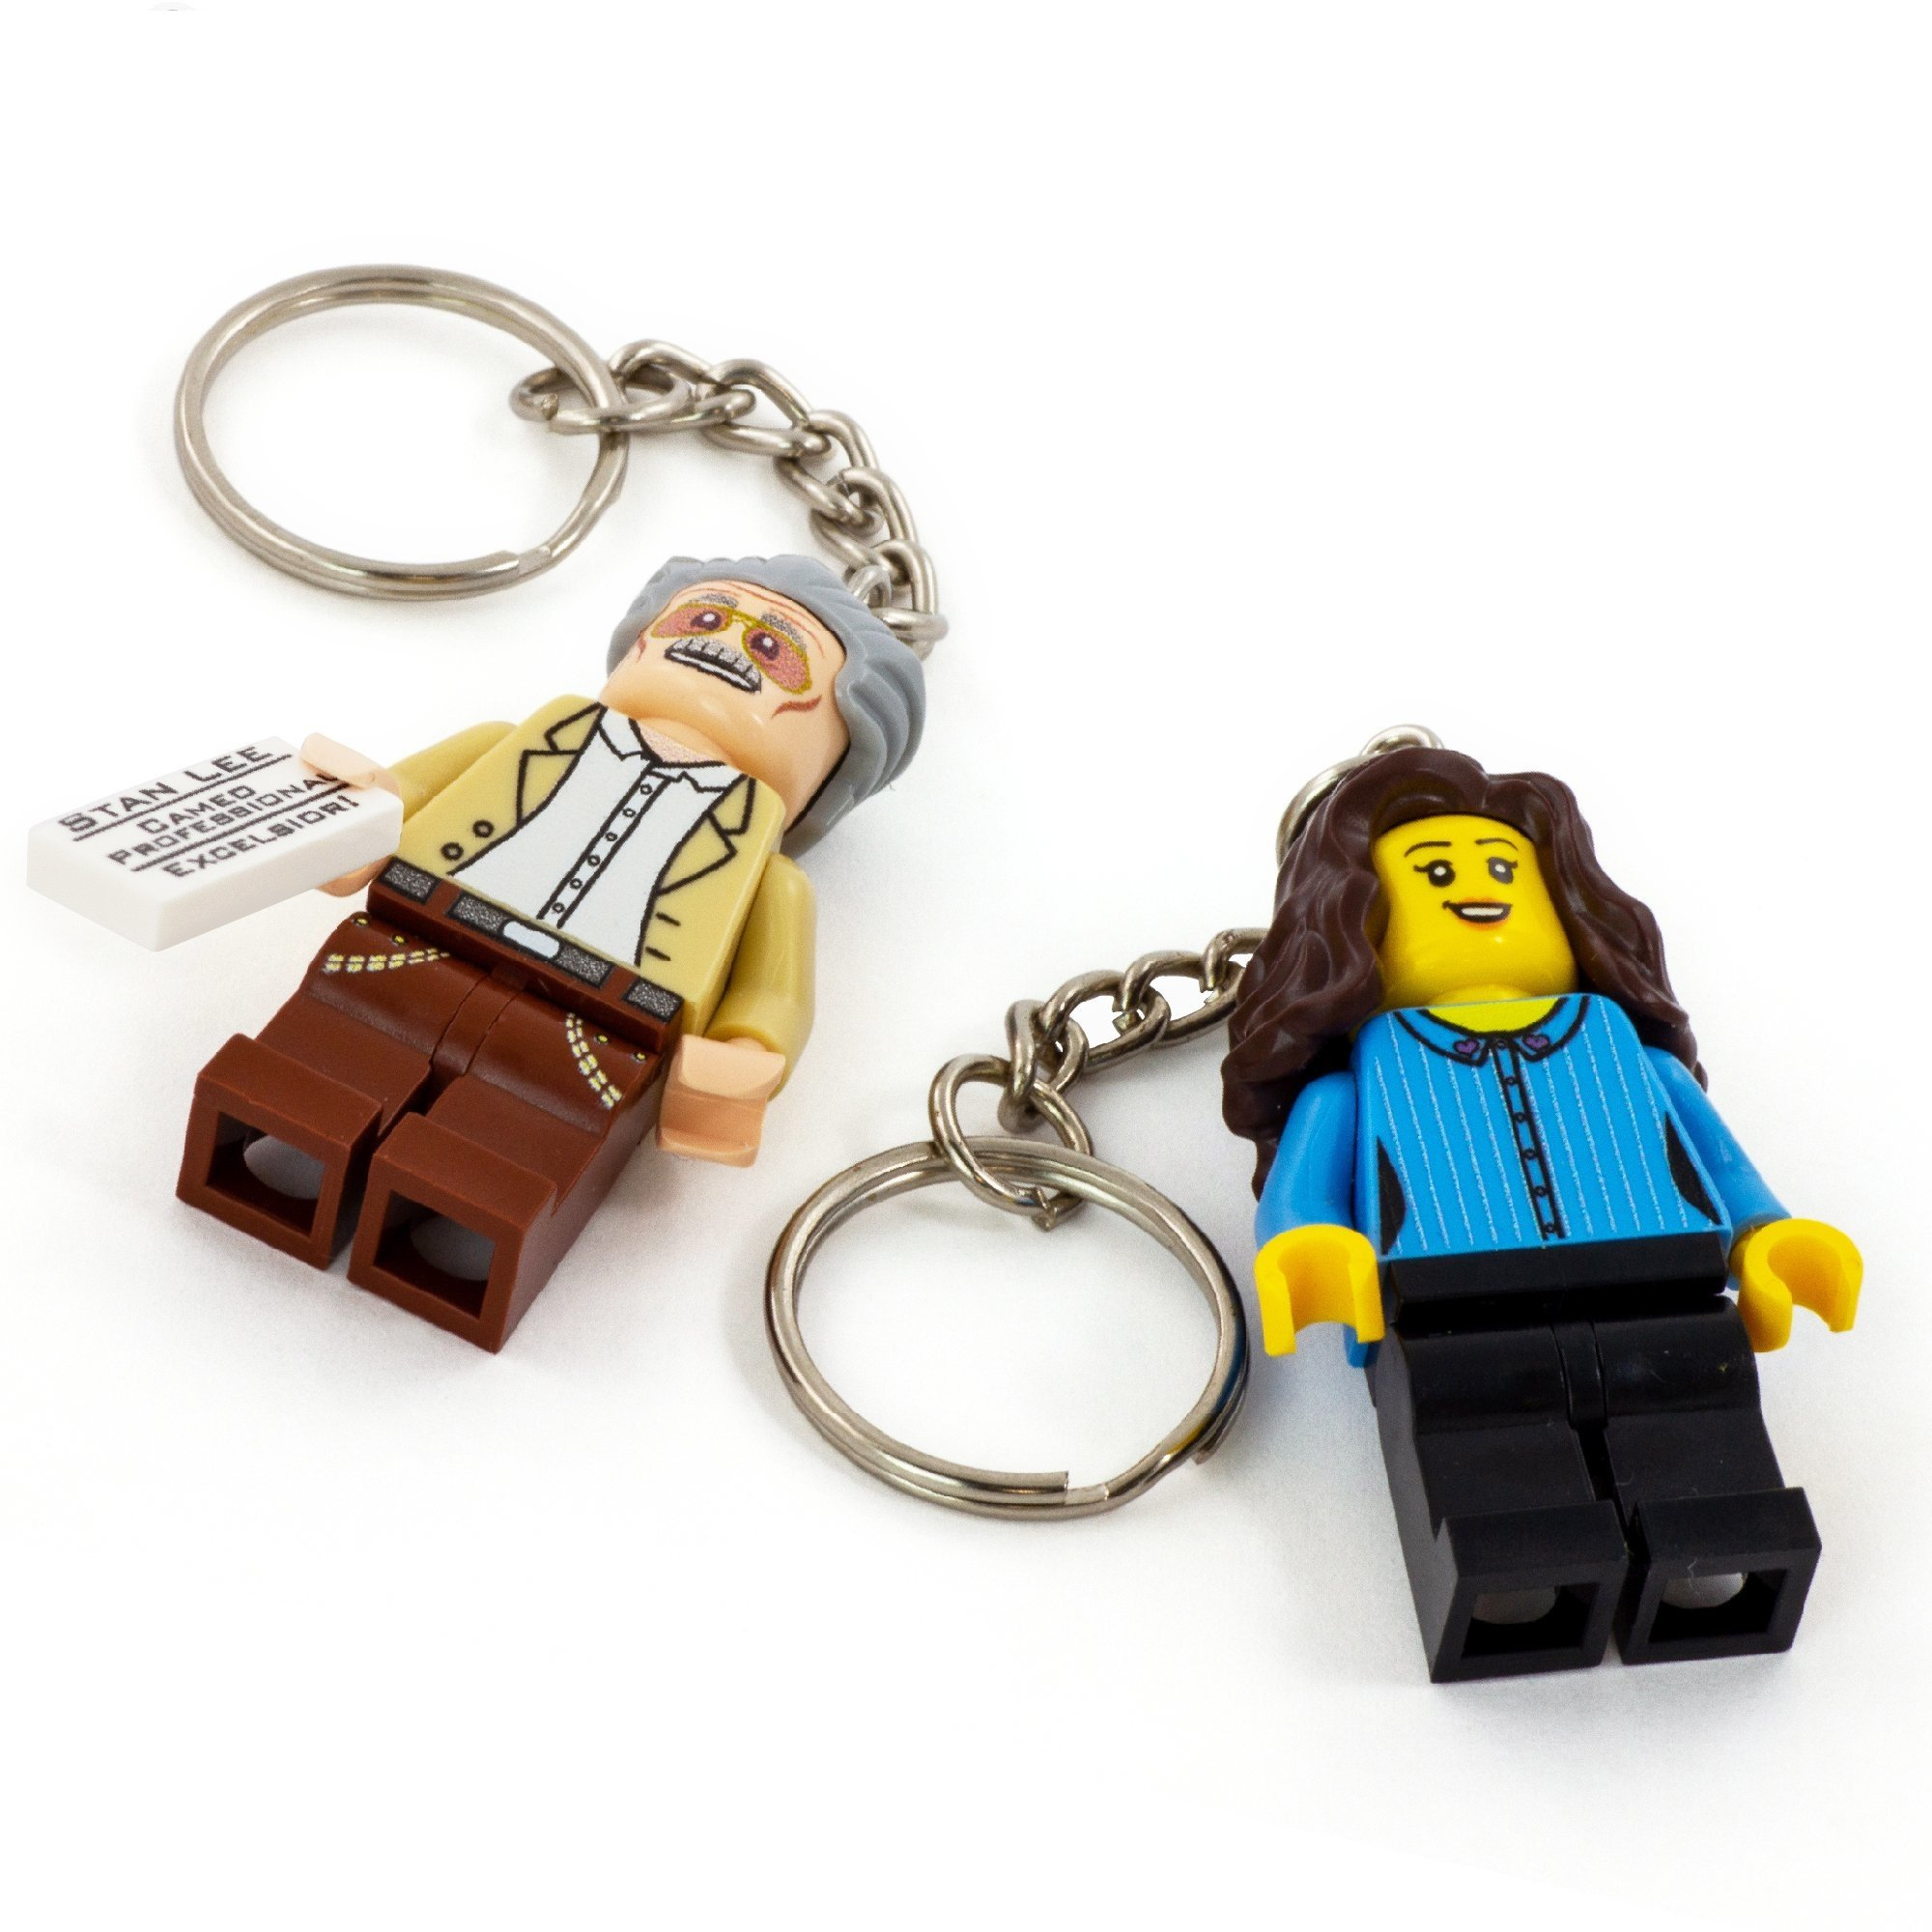 All about key chains